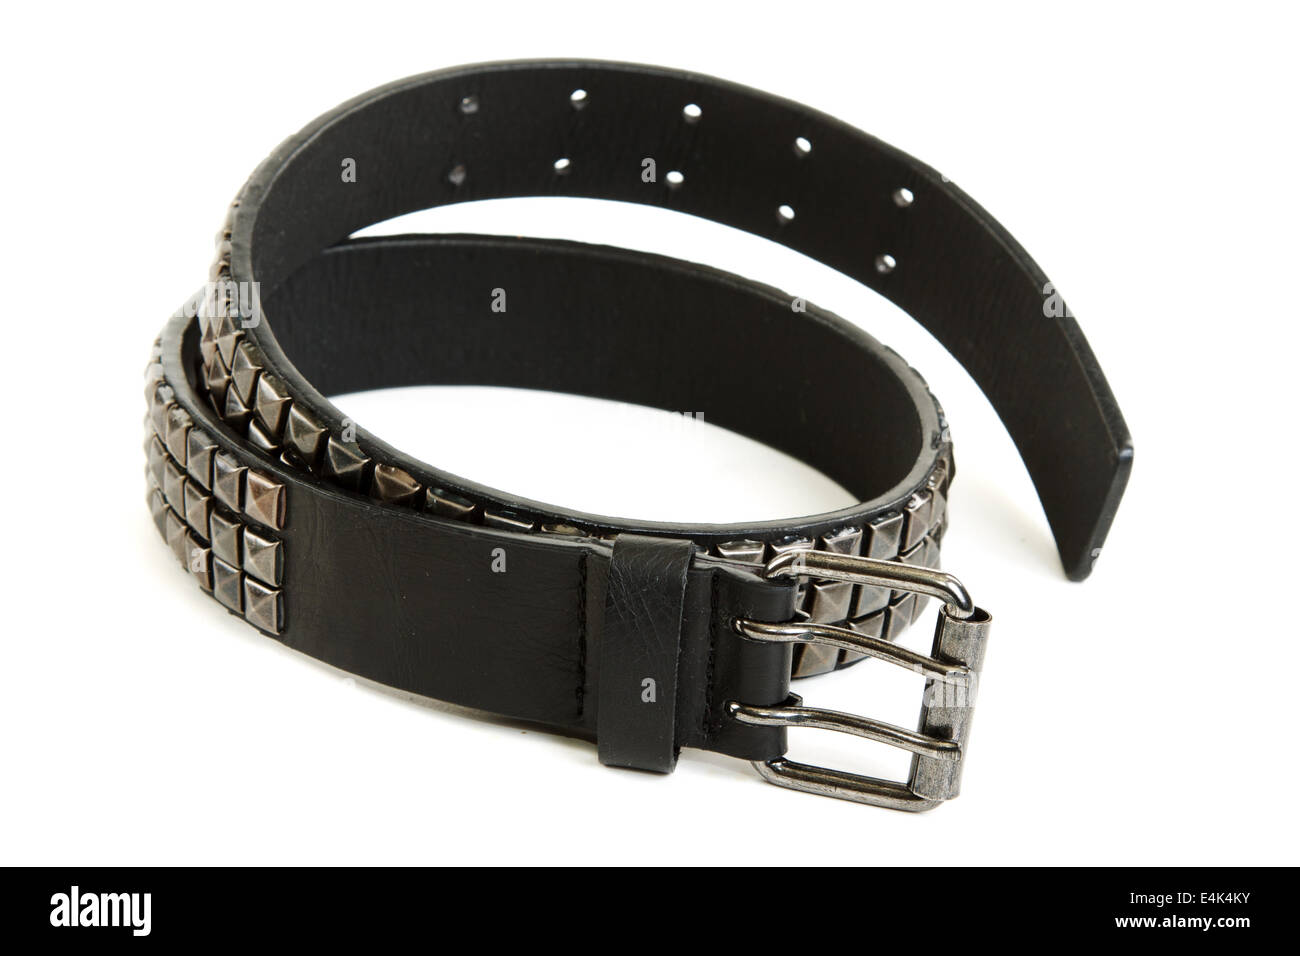 Black leather belt with steel buckle - Stock Image